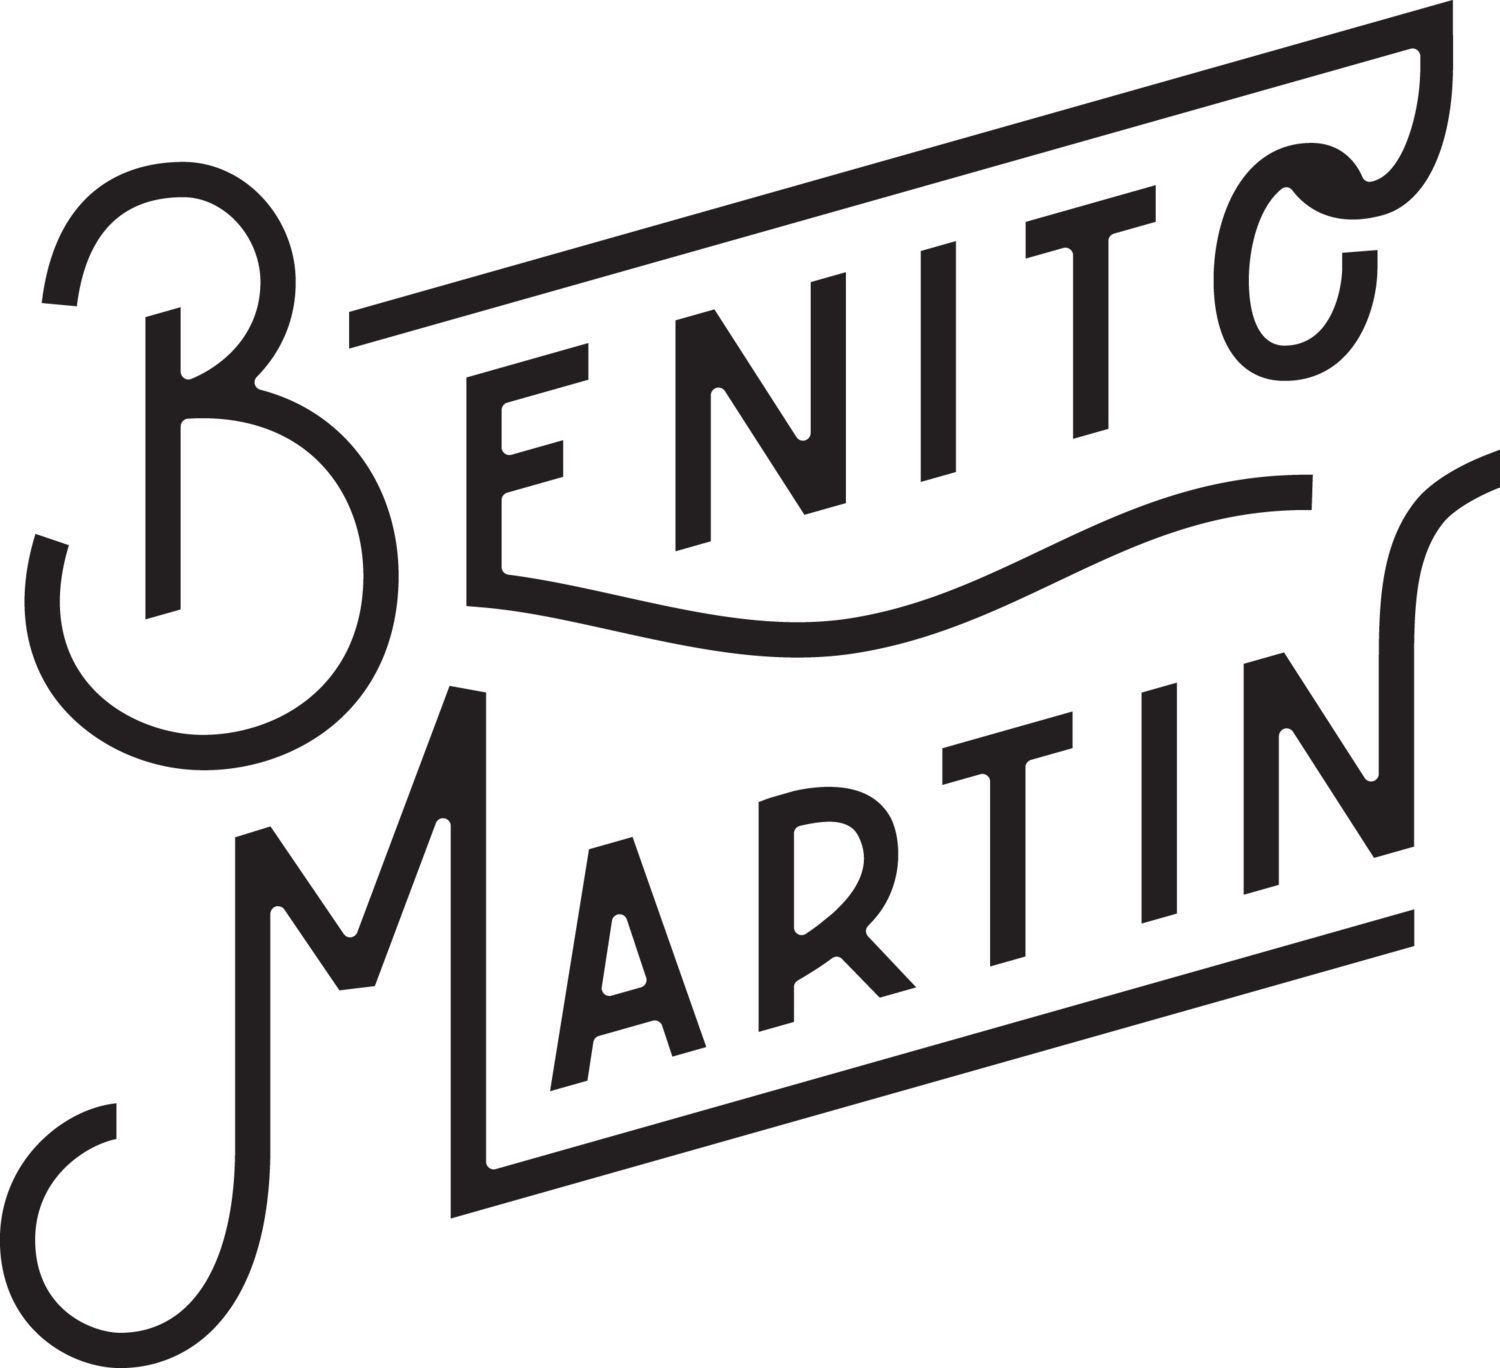 Benito Martin Photography - food, lifestyle and advertising photographer based in sydney australia